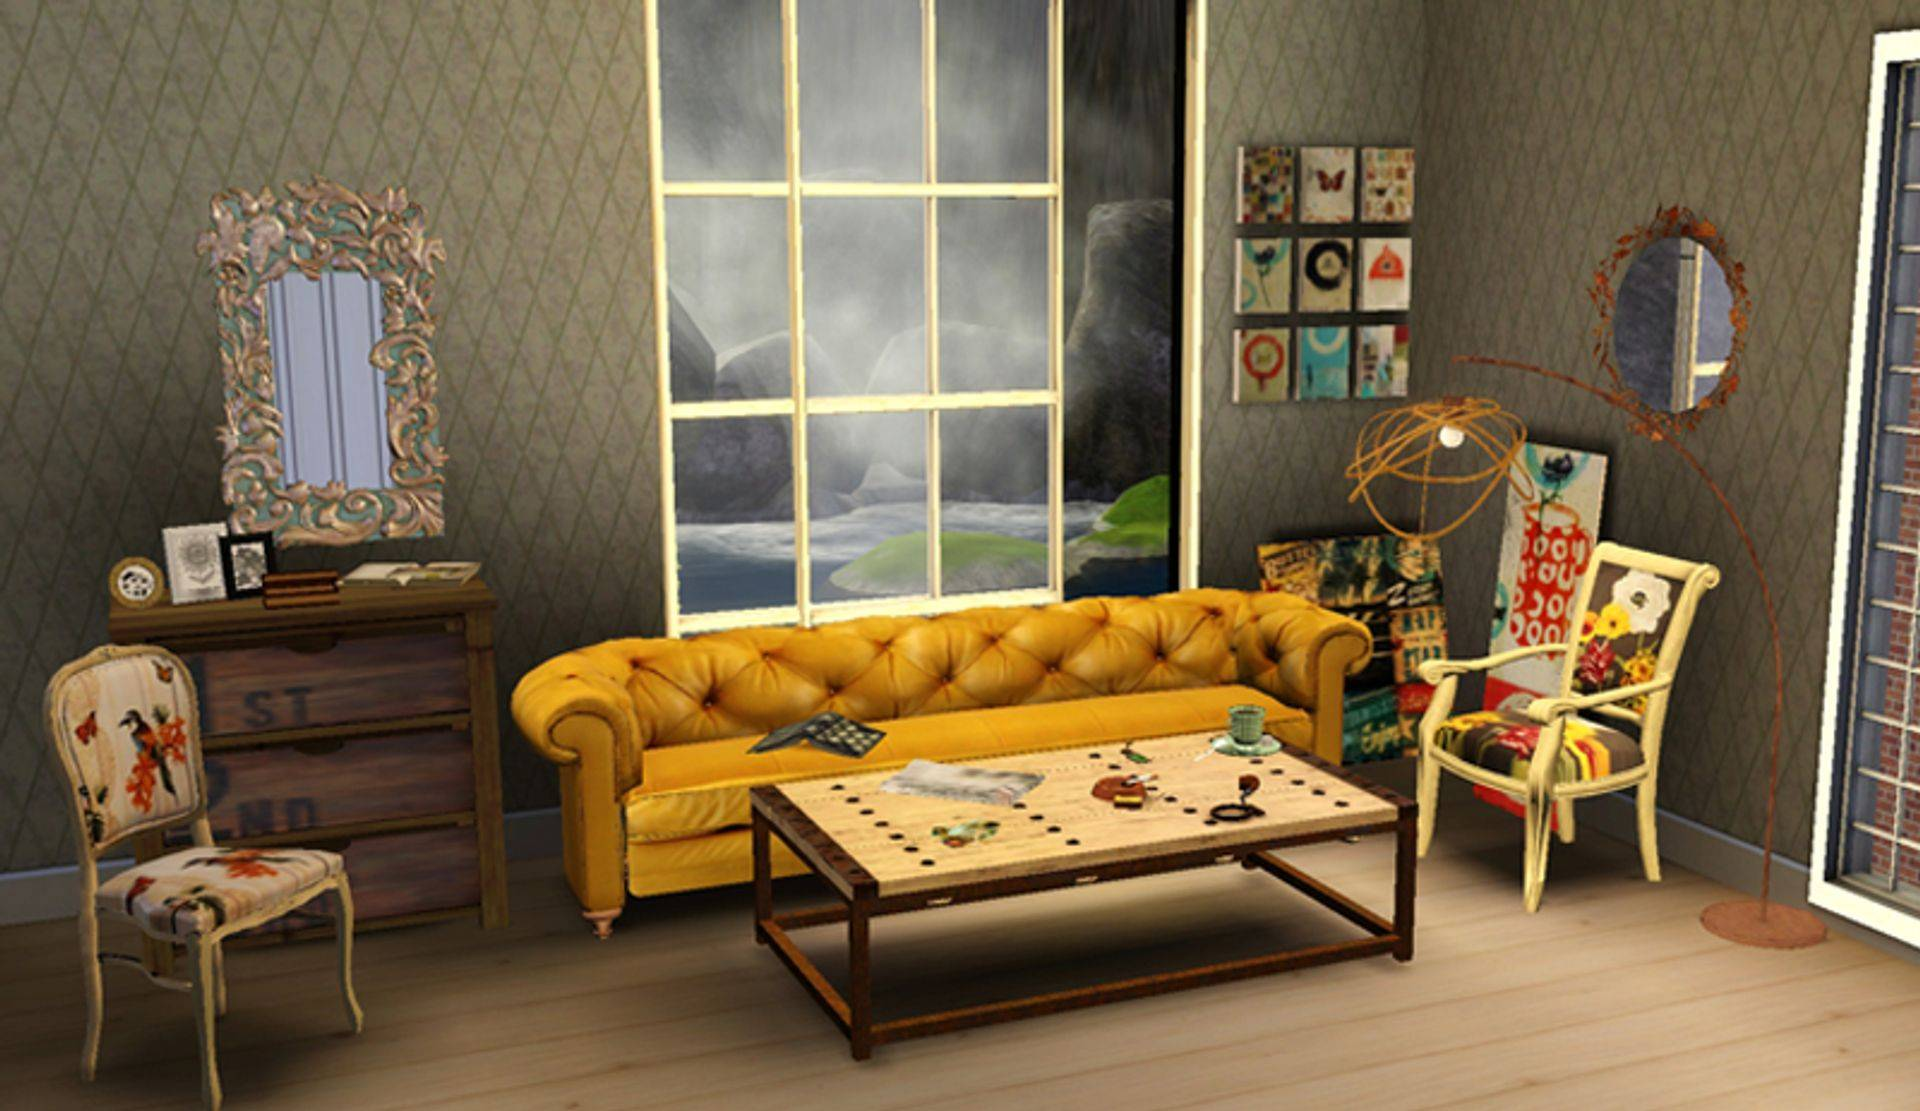 Chesterfield Sofa Sims 4 Kitkat 39s Simporium Pillows And Rugs